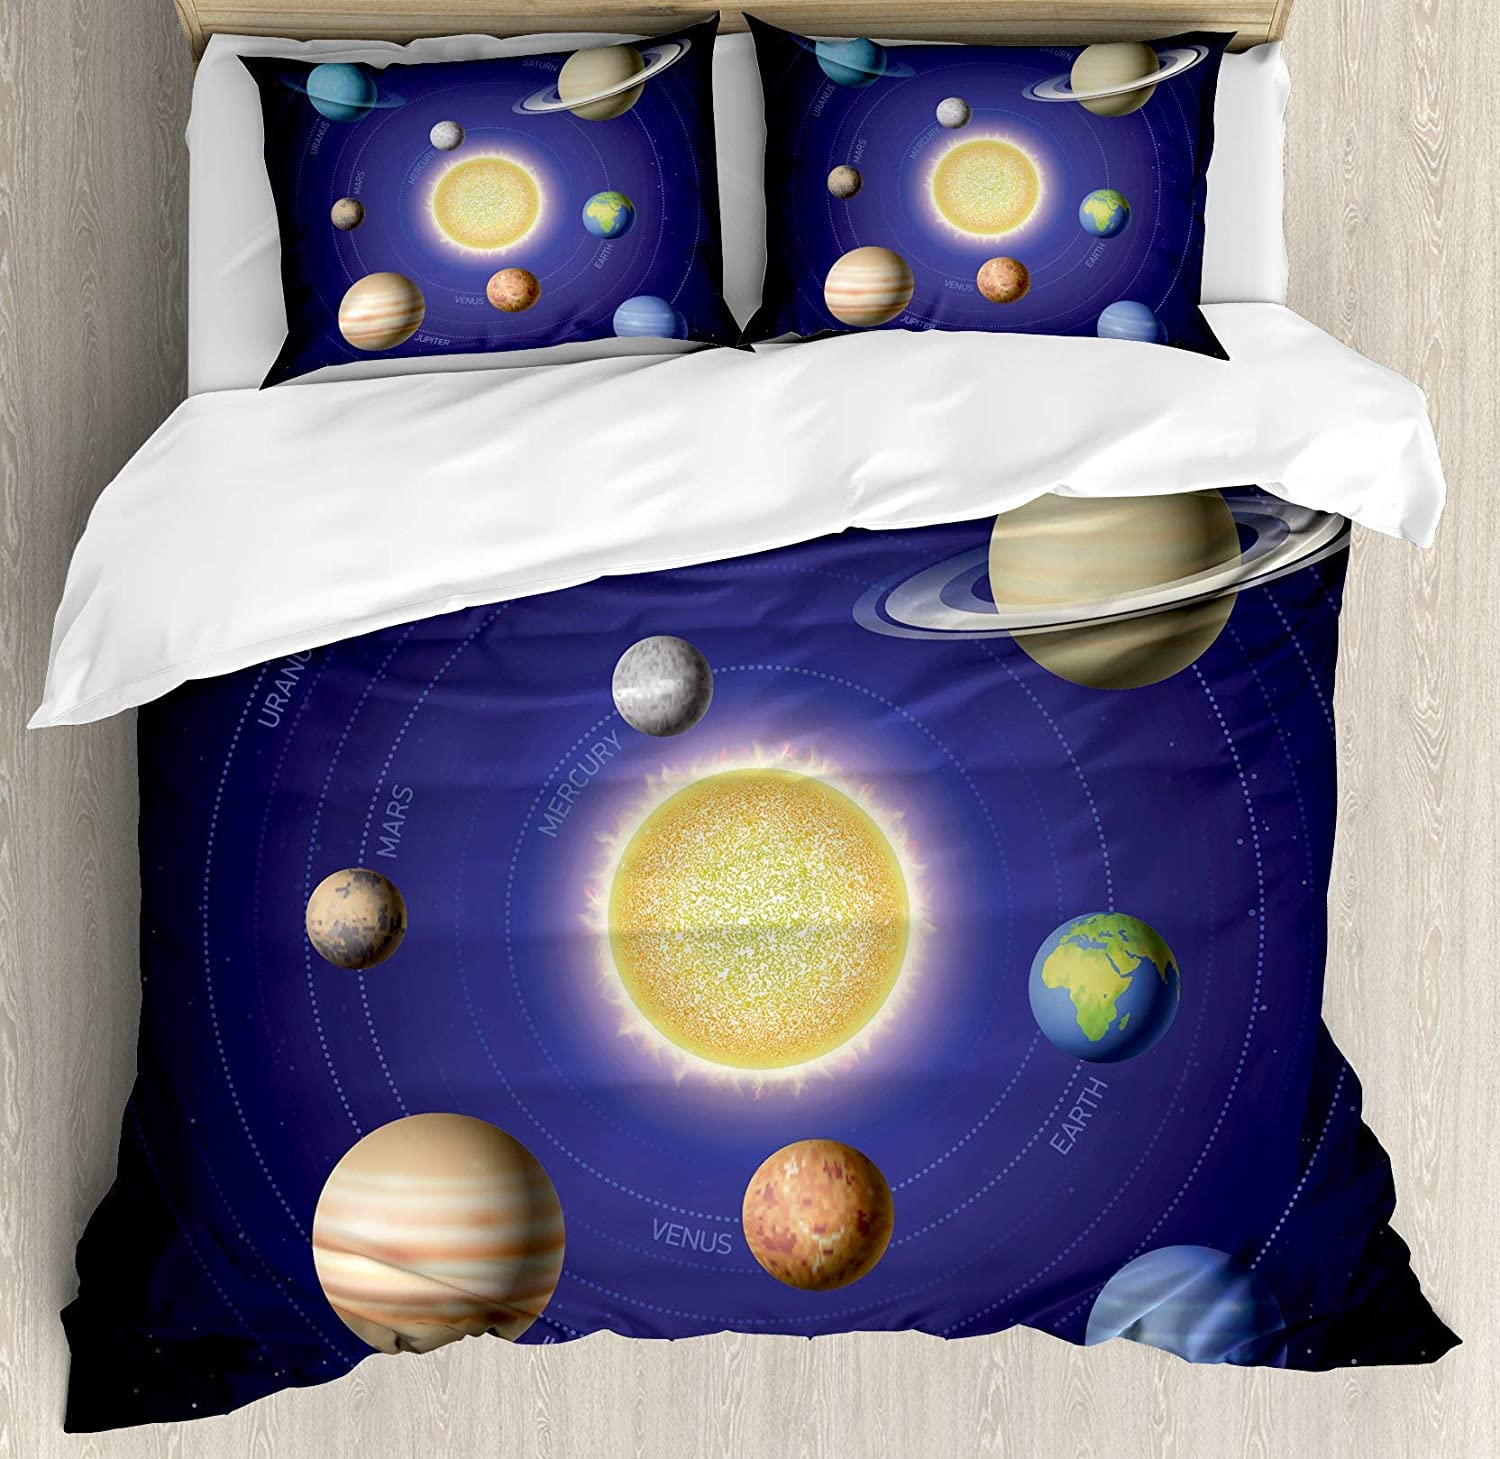 BULING Space 4pc Bedding Set Queen Size, Solar System Illustration Showing Planets Around Sun Harmony of Galaxy Science Room Image Floral Lightweight Microfiber Duvet Cover Set, Multi